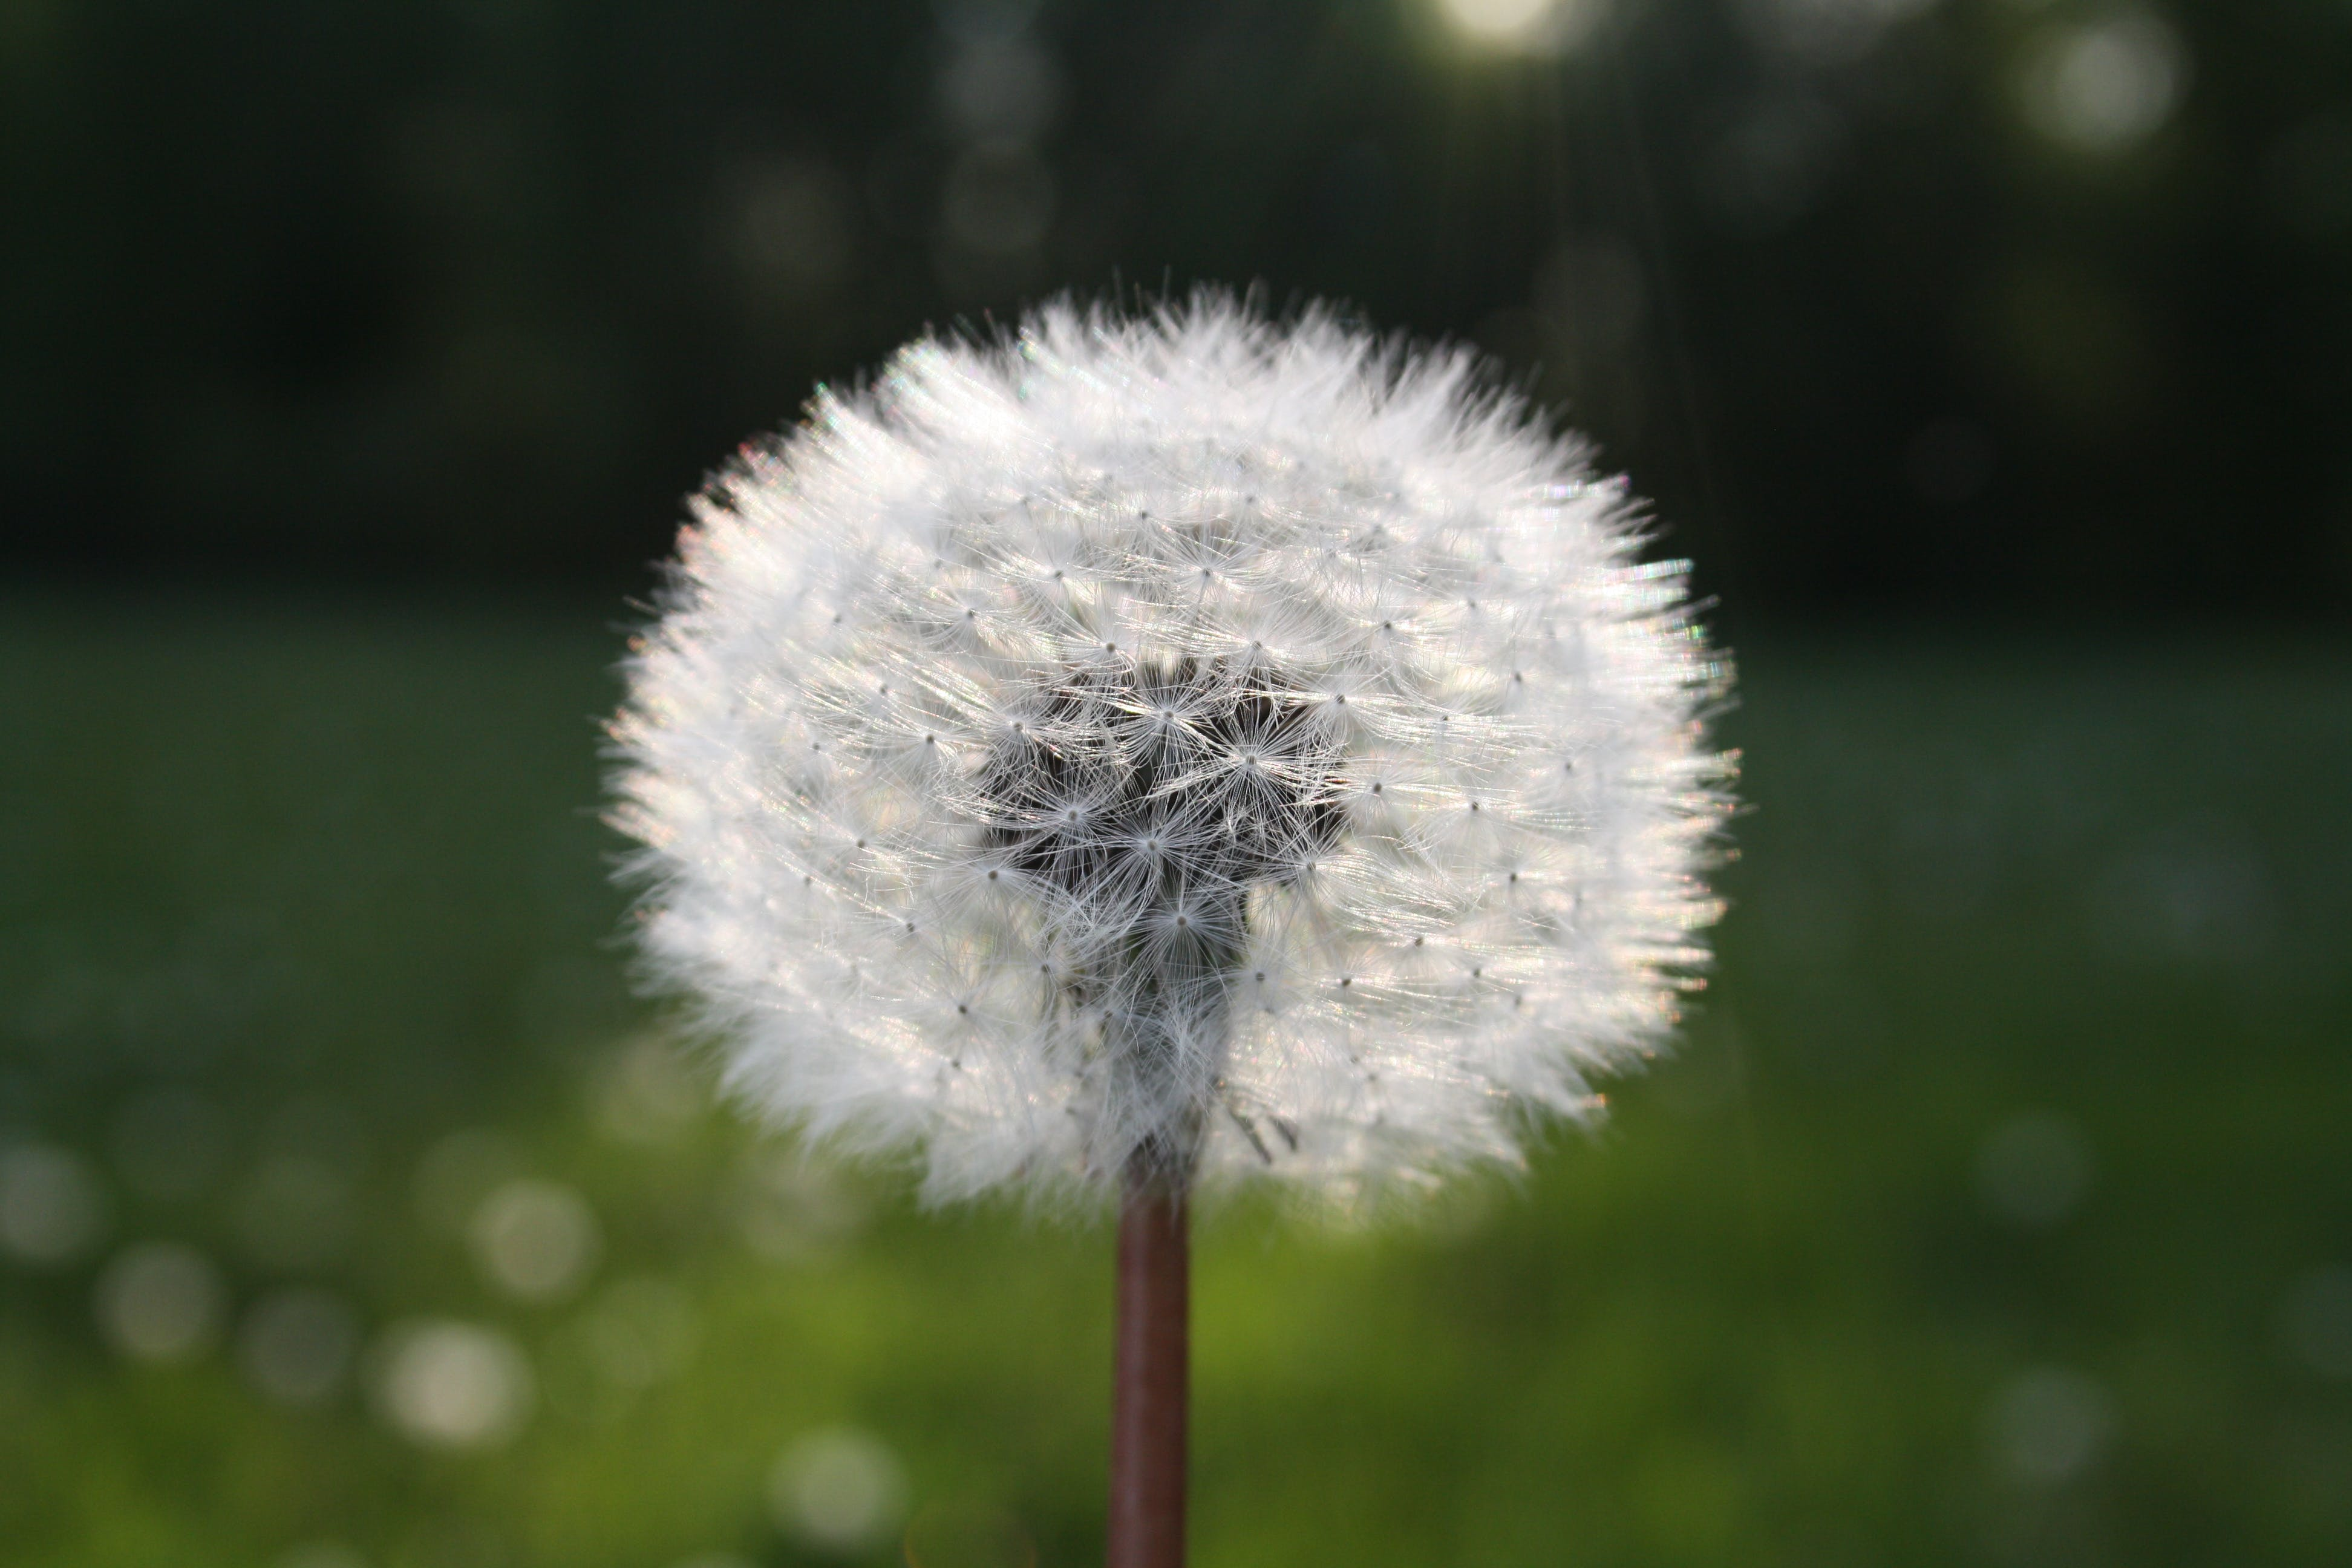 White Dandelion Flower in Close Up Photograph